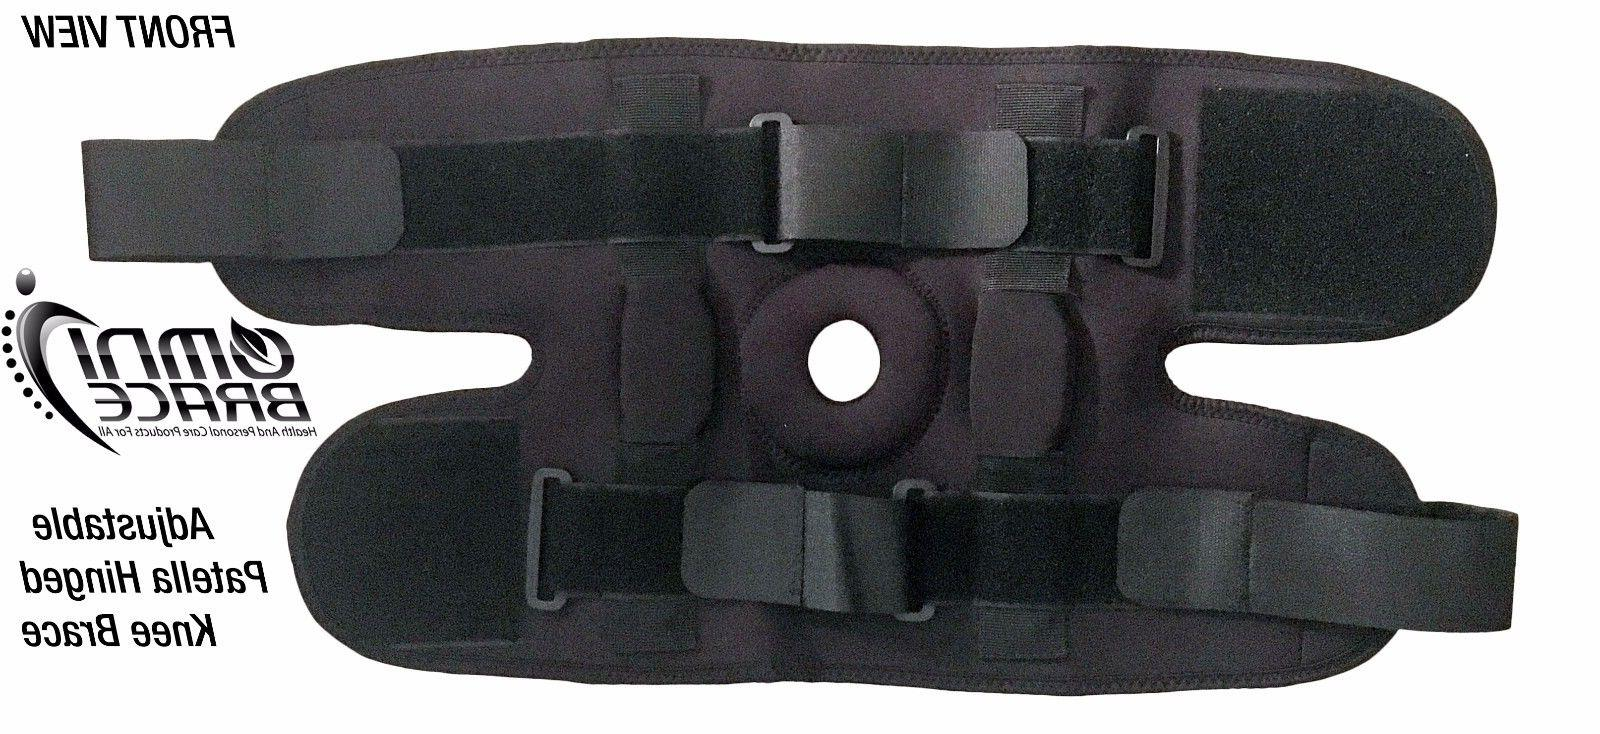 OmniBrace-Adjustable Patella Knee Brace M 4XL